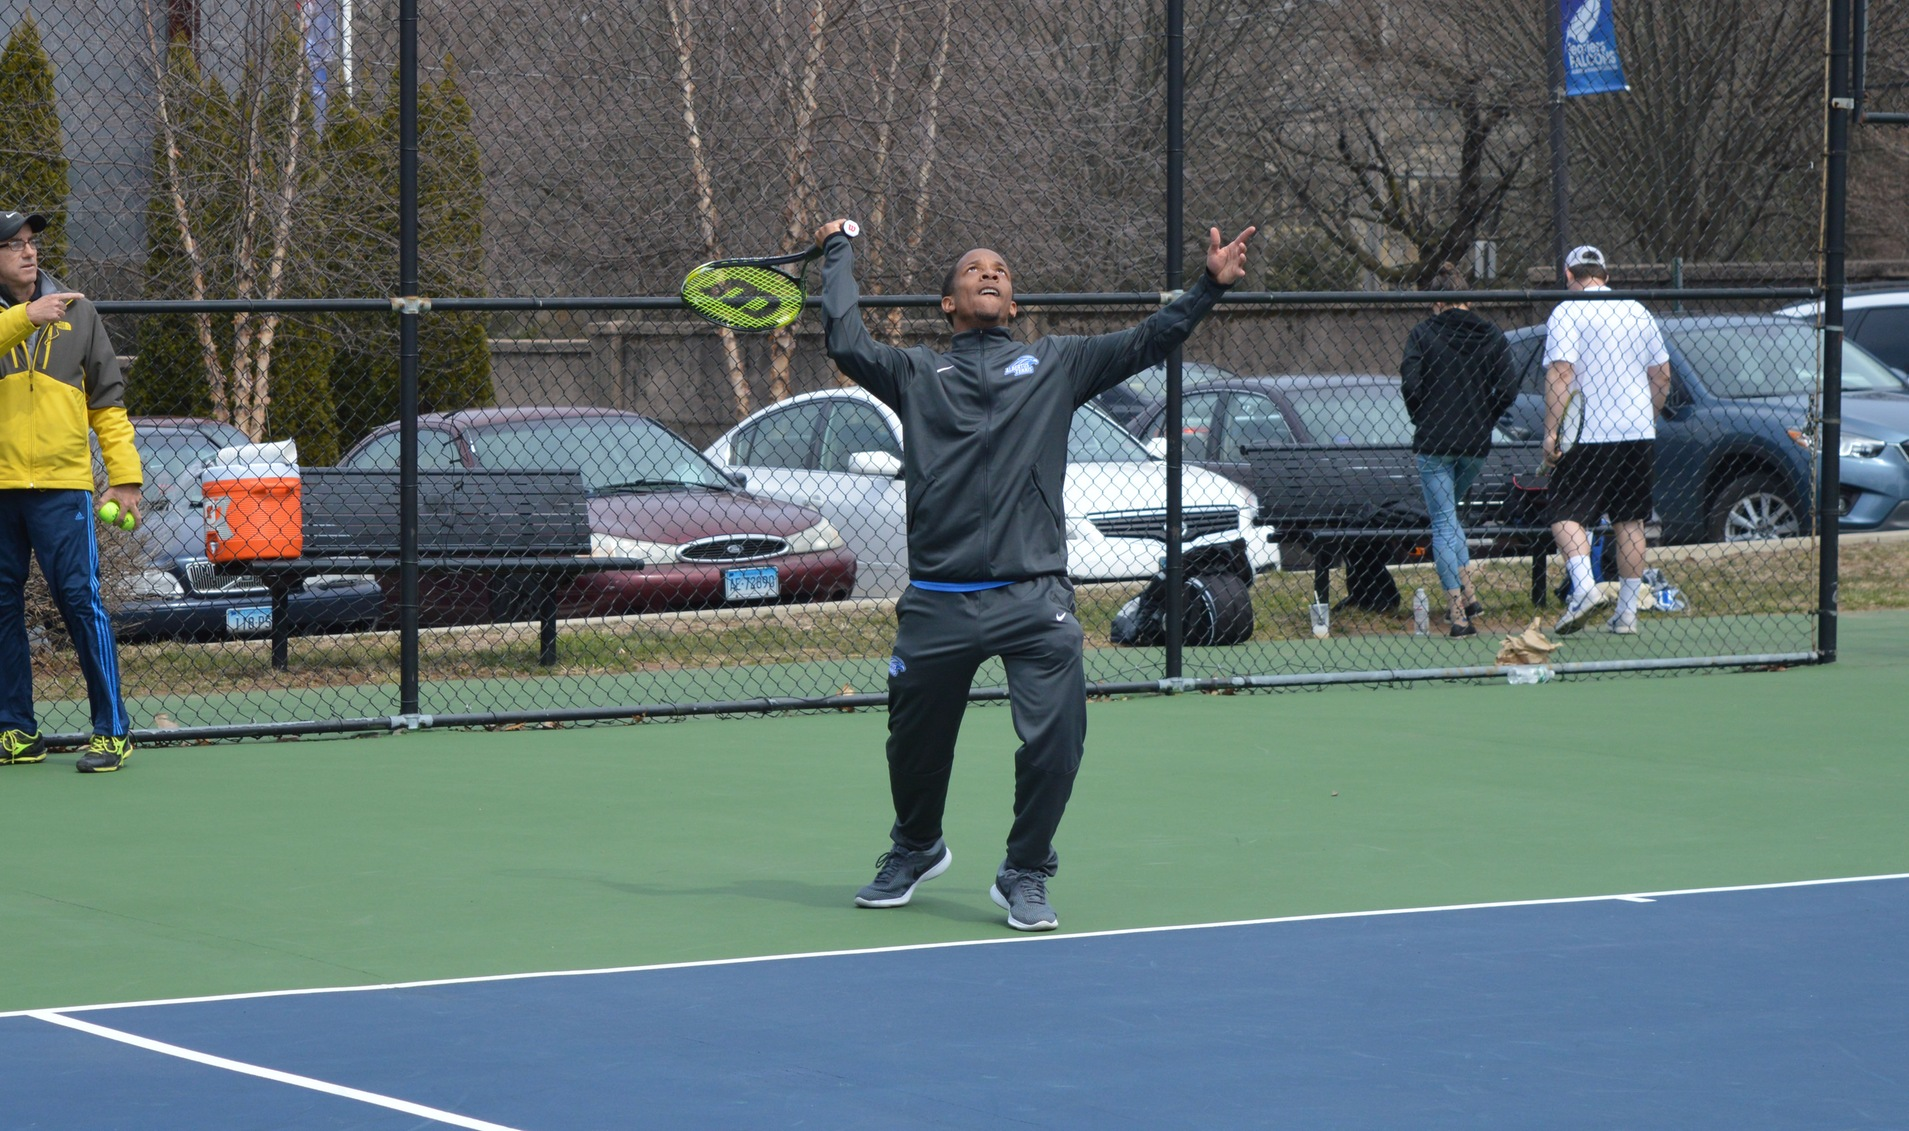 Yeshiva Defeats Men's Tennis in Non-Conference Play